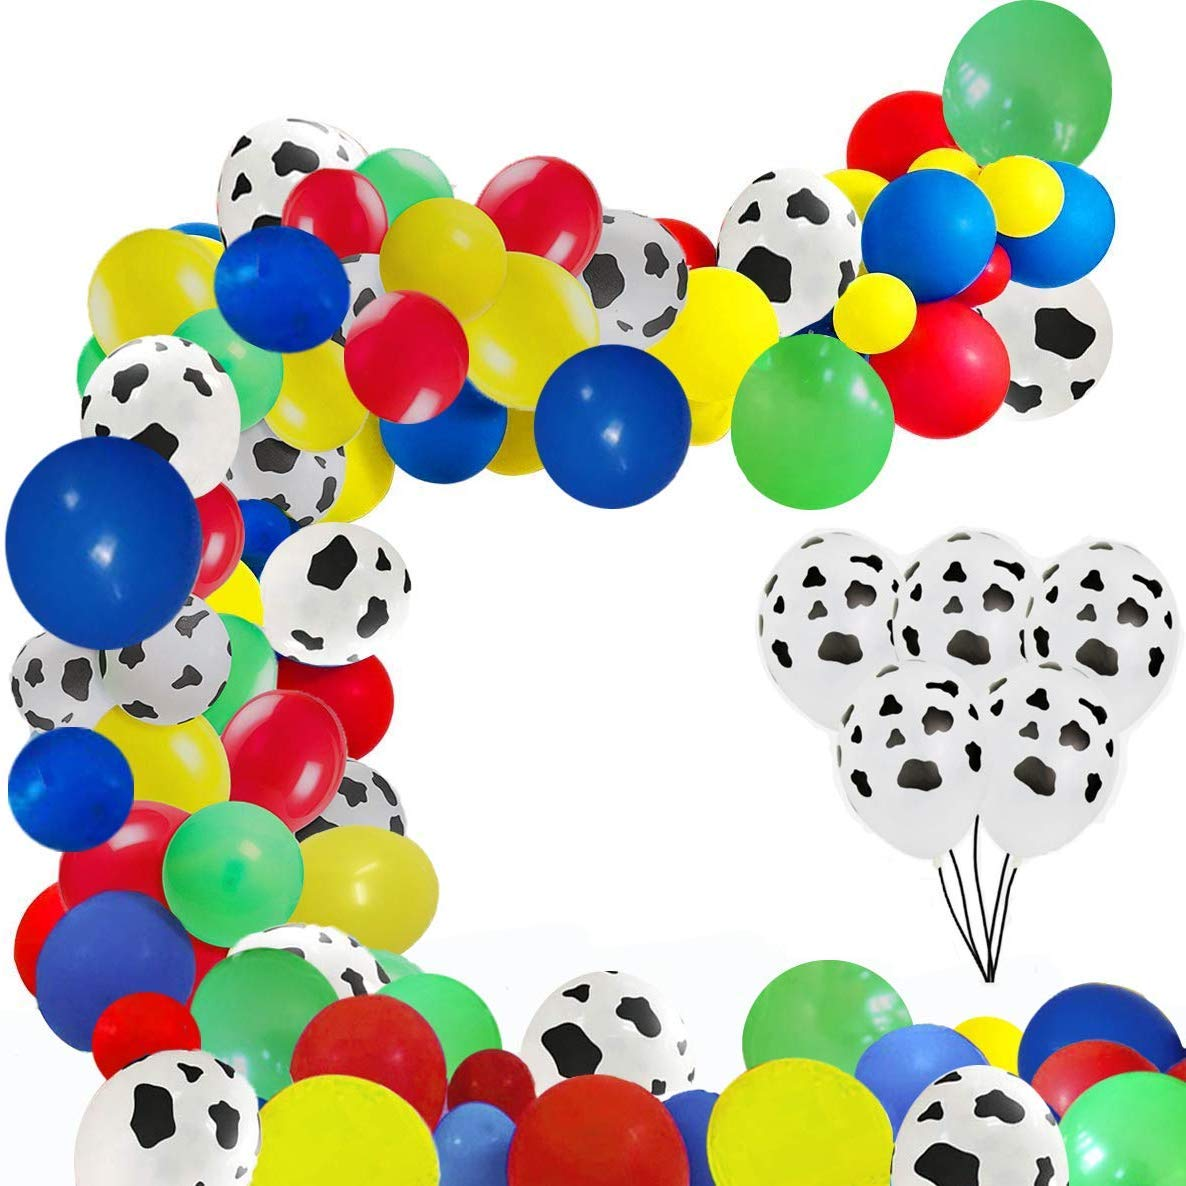 EVISWIY 120 PCS Toy Story Balloons Arch Garland Kit for Kids Birthday Party 1st 2nd 3rd 6th Baby Shower Ballons Decorations Supplies for Boy Girl 12 Inch Cow Pattern Printed /Red /Yellow/ Blue/ Green Latex Balloons